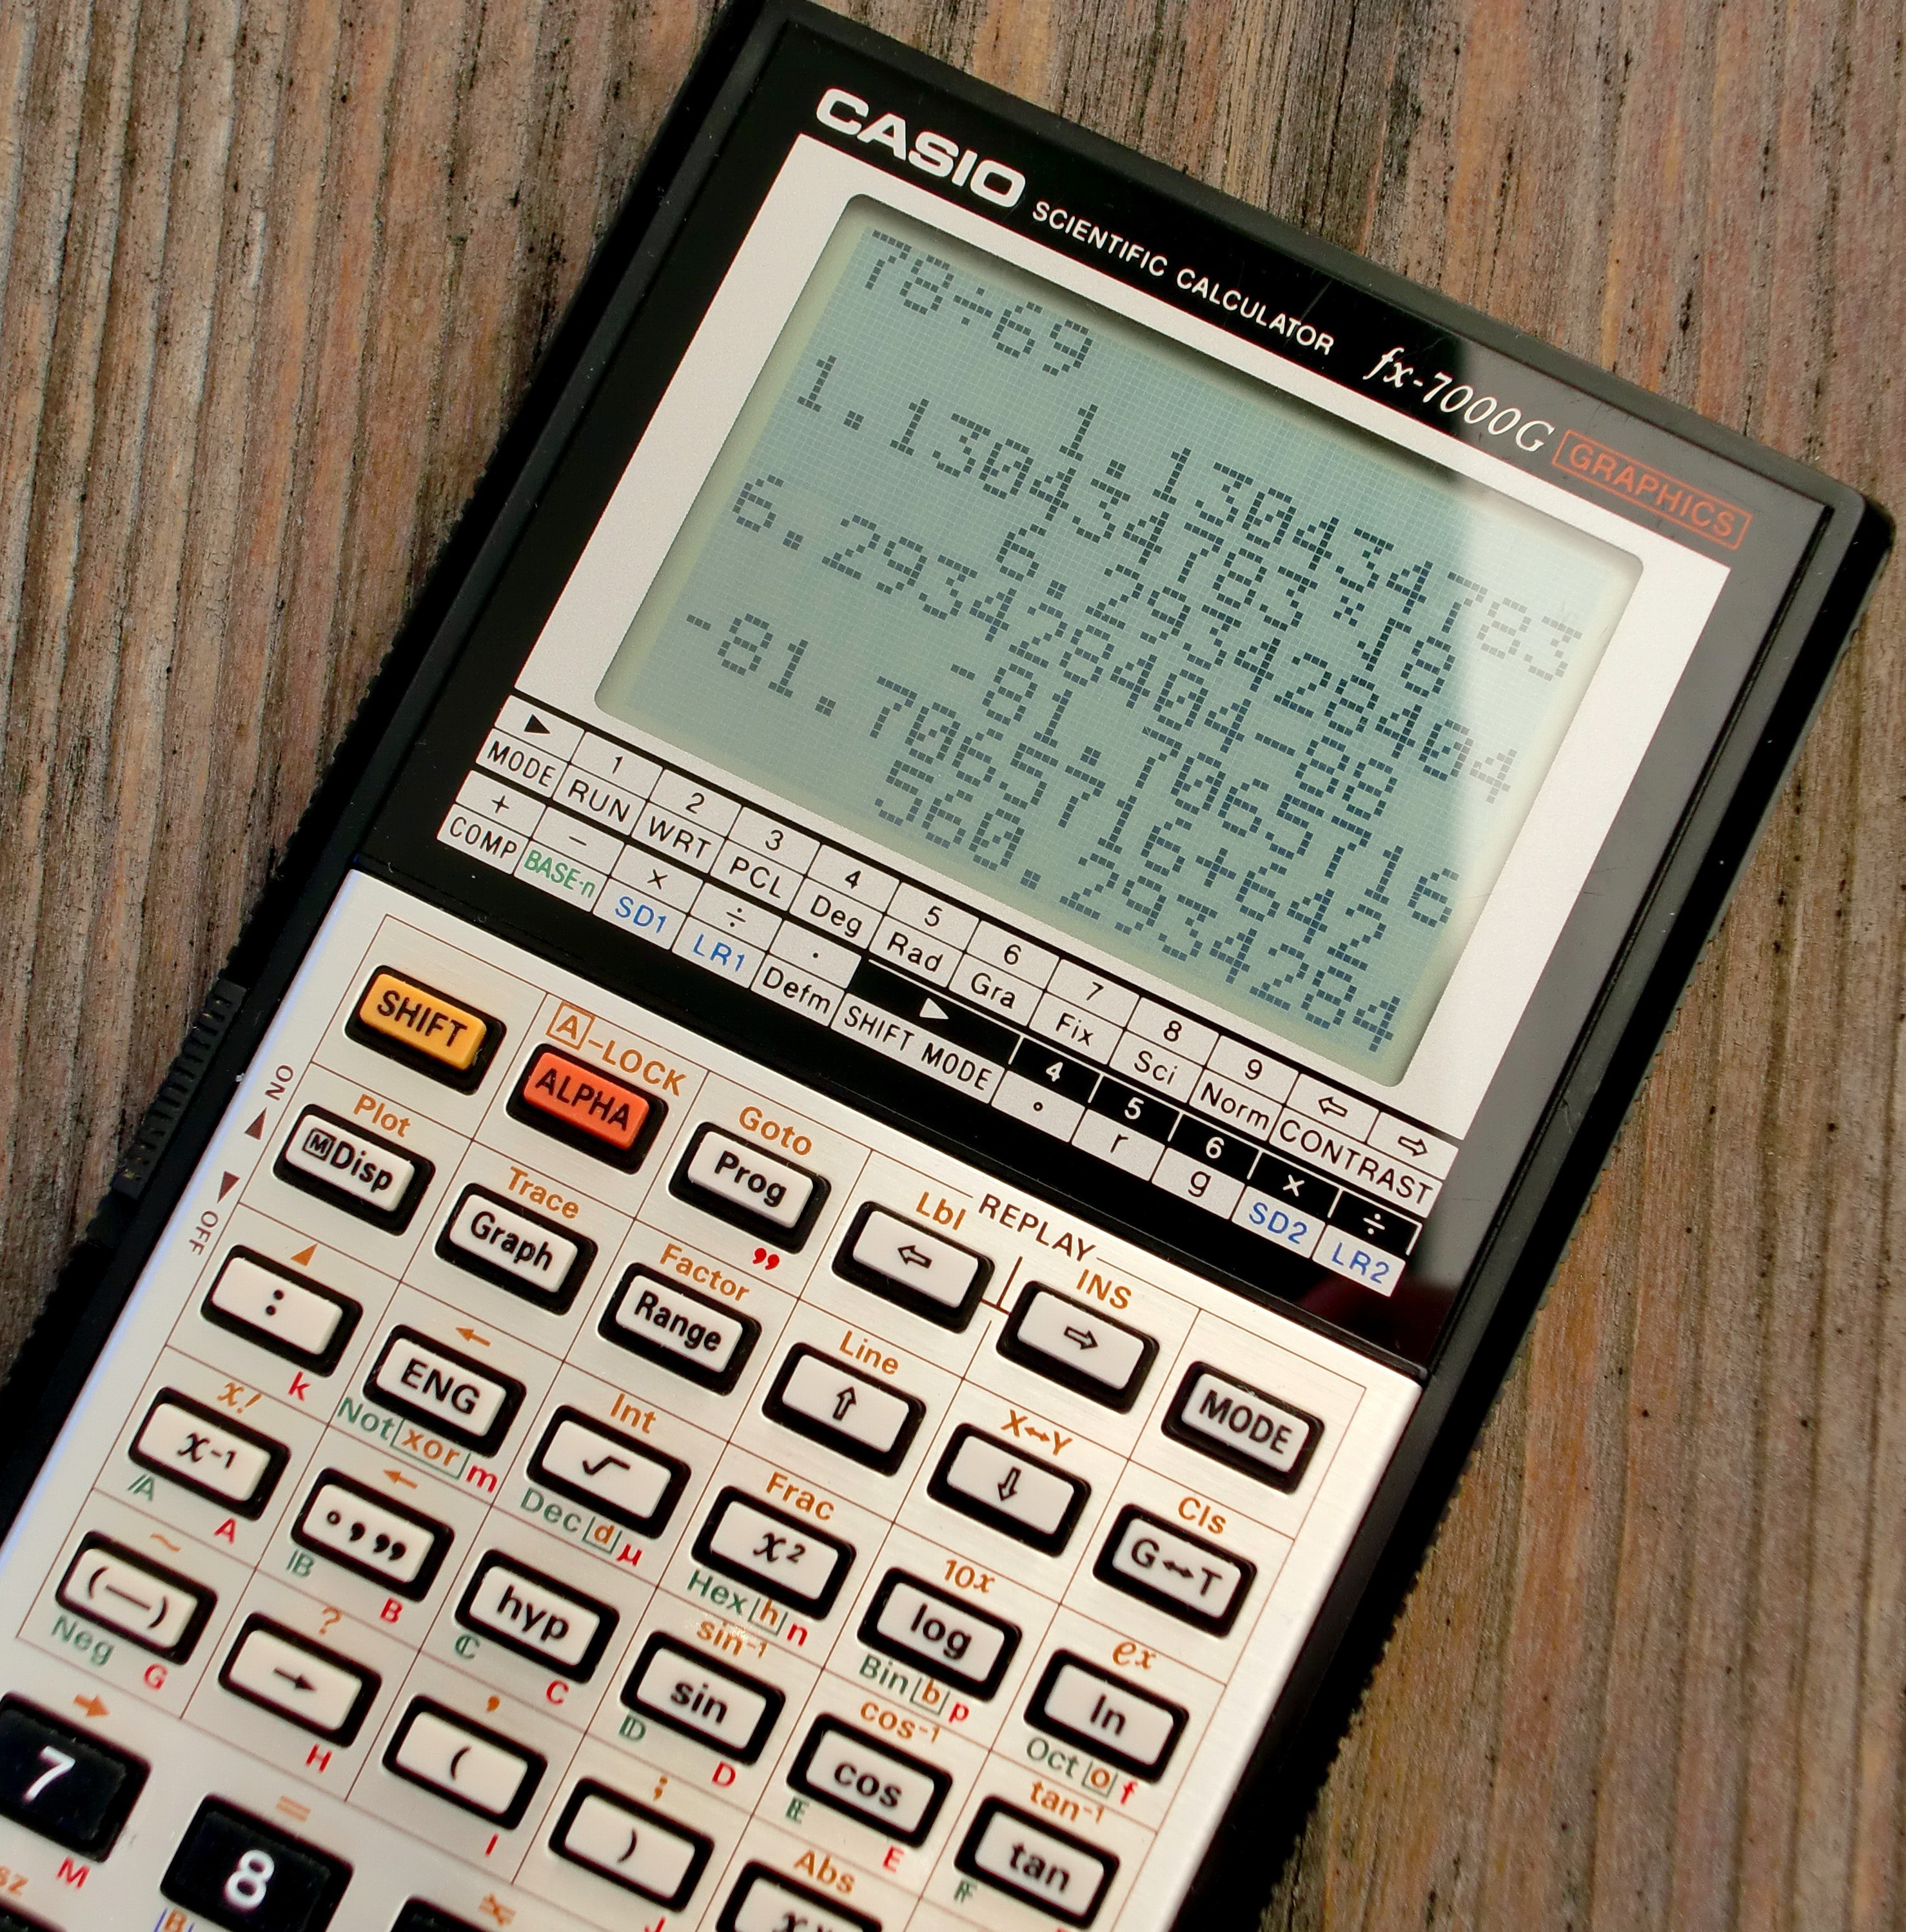 Scientific calculator with lots of numbers and calculations on it, sitting on a desk